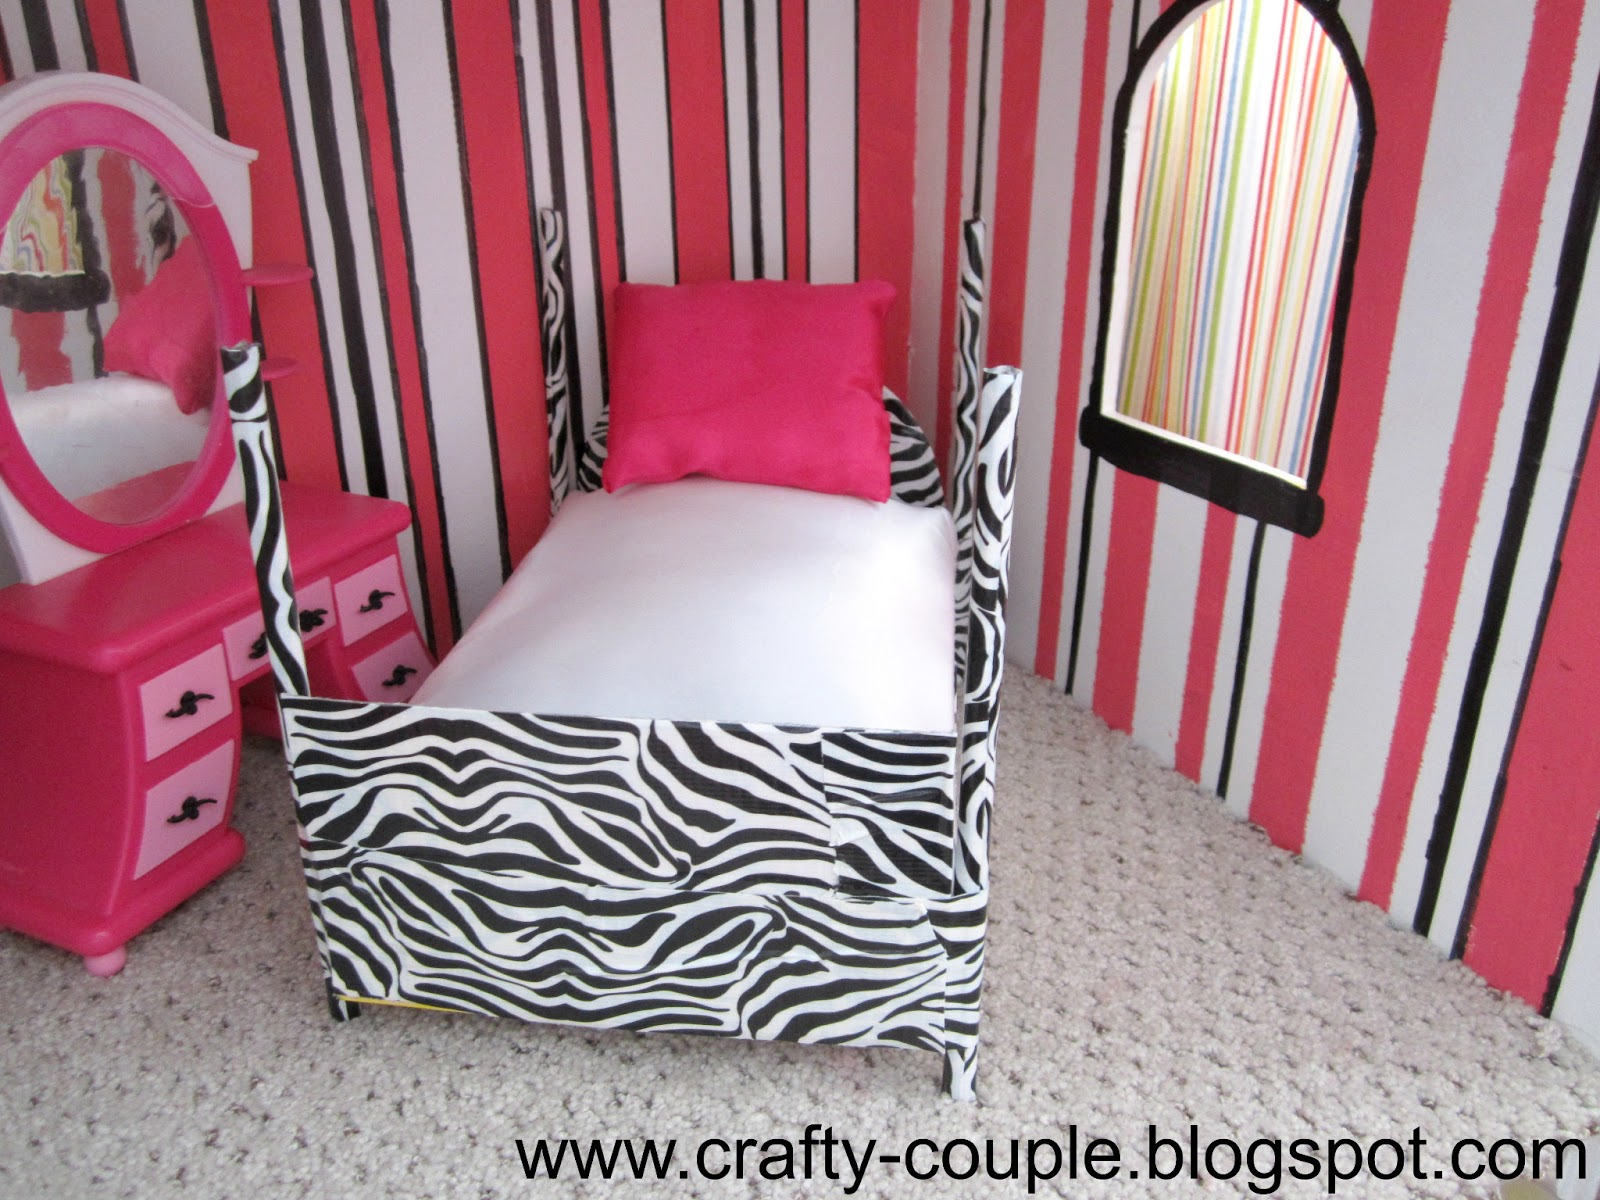 Crafty Couple Diy Barbie Bed